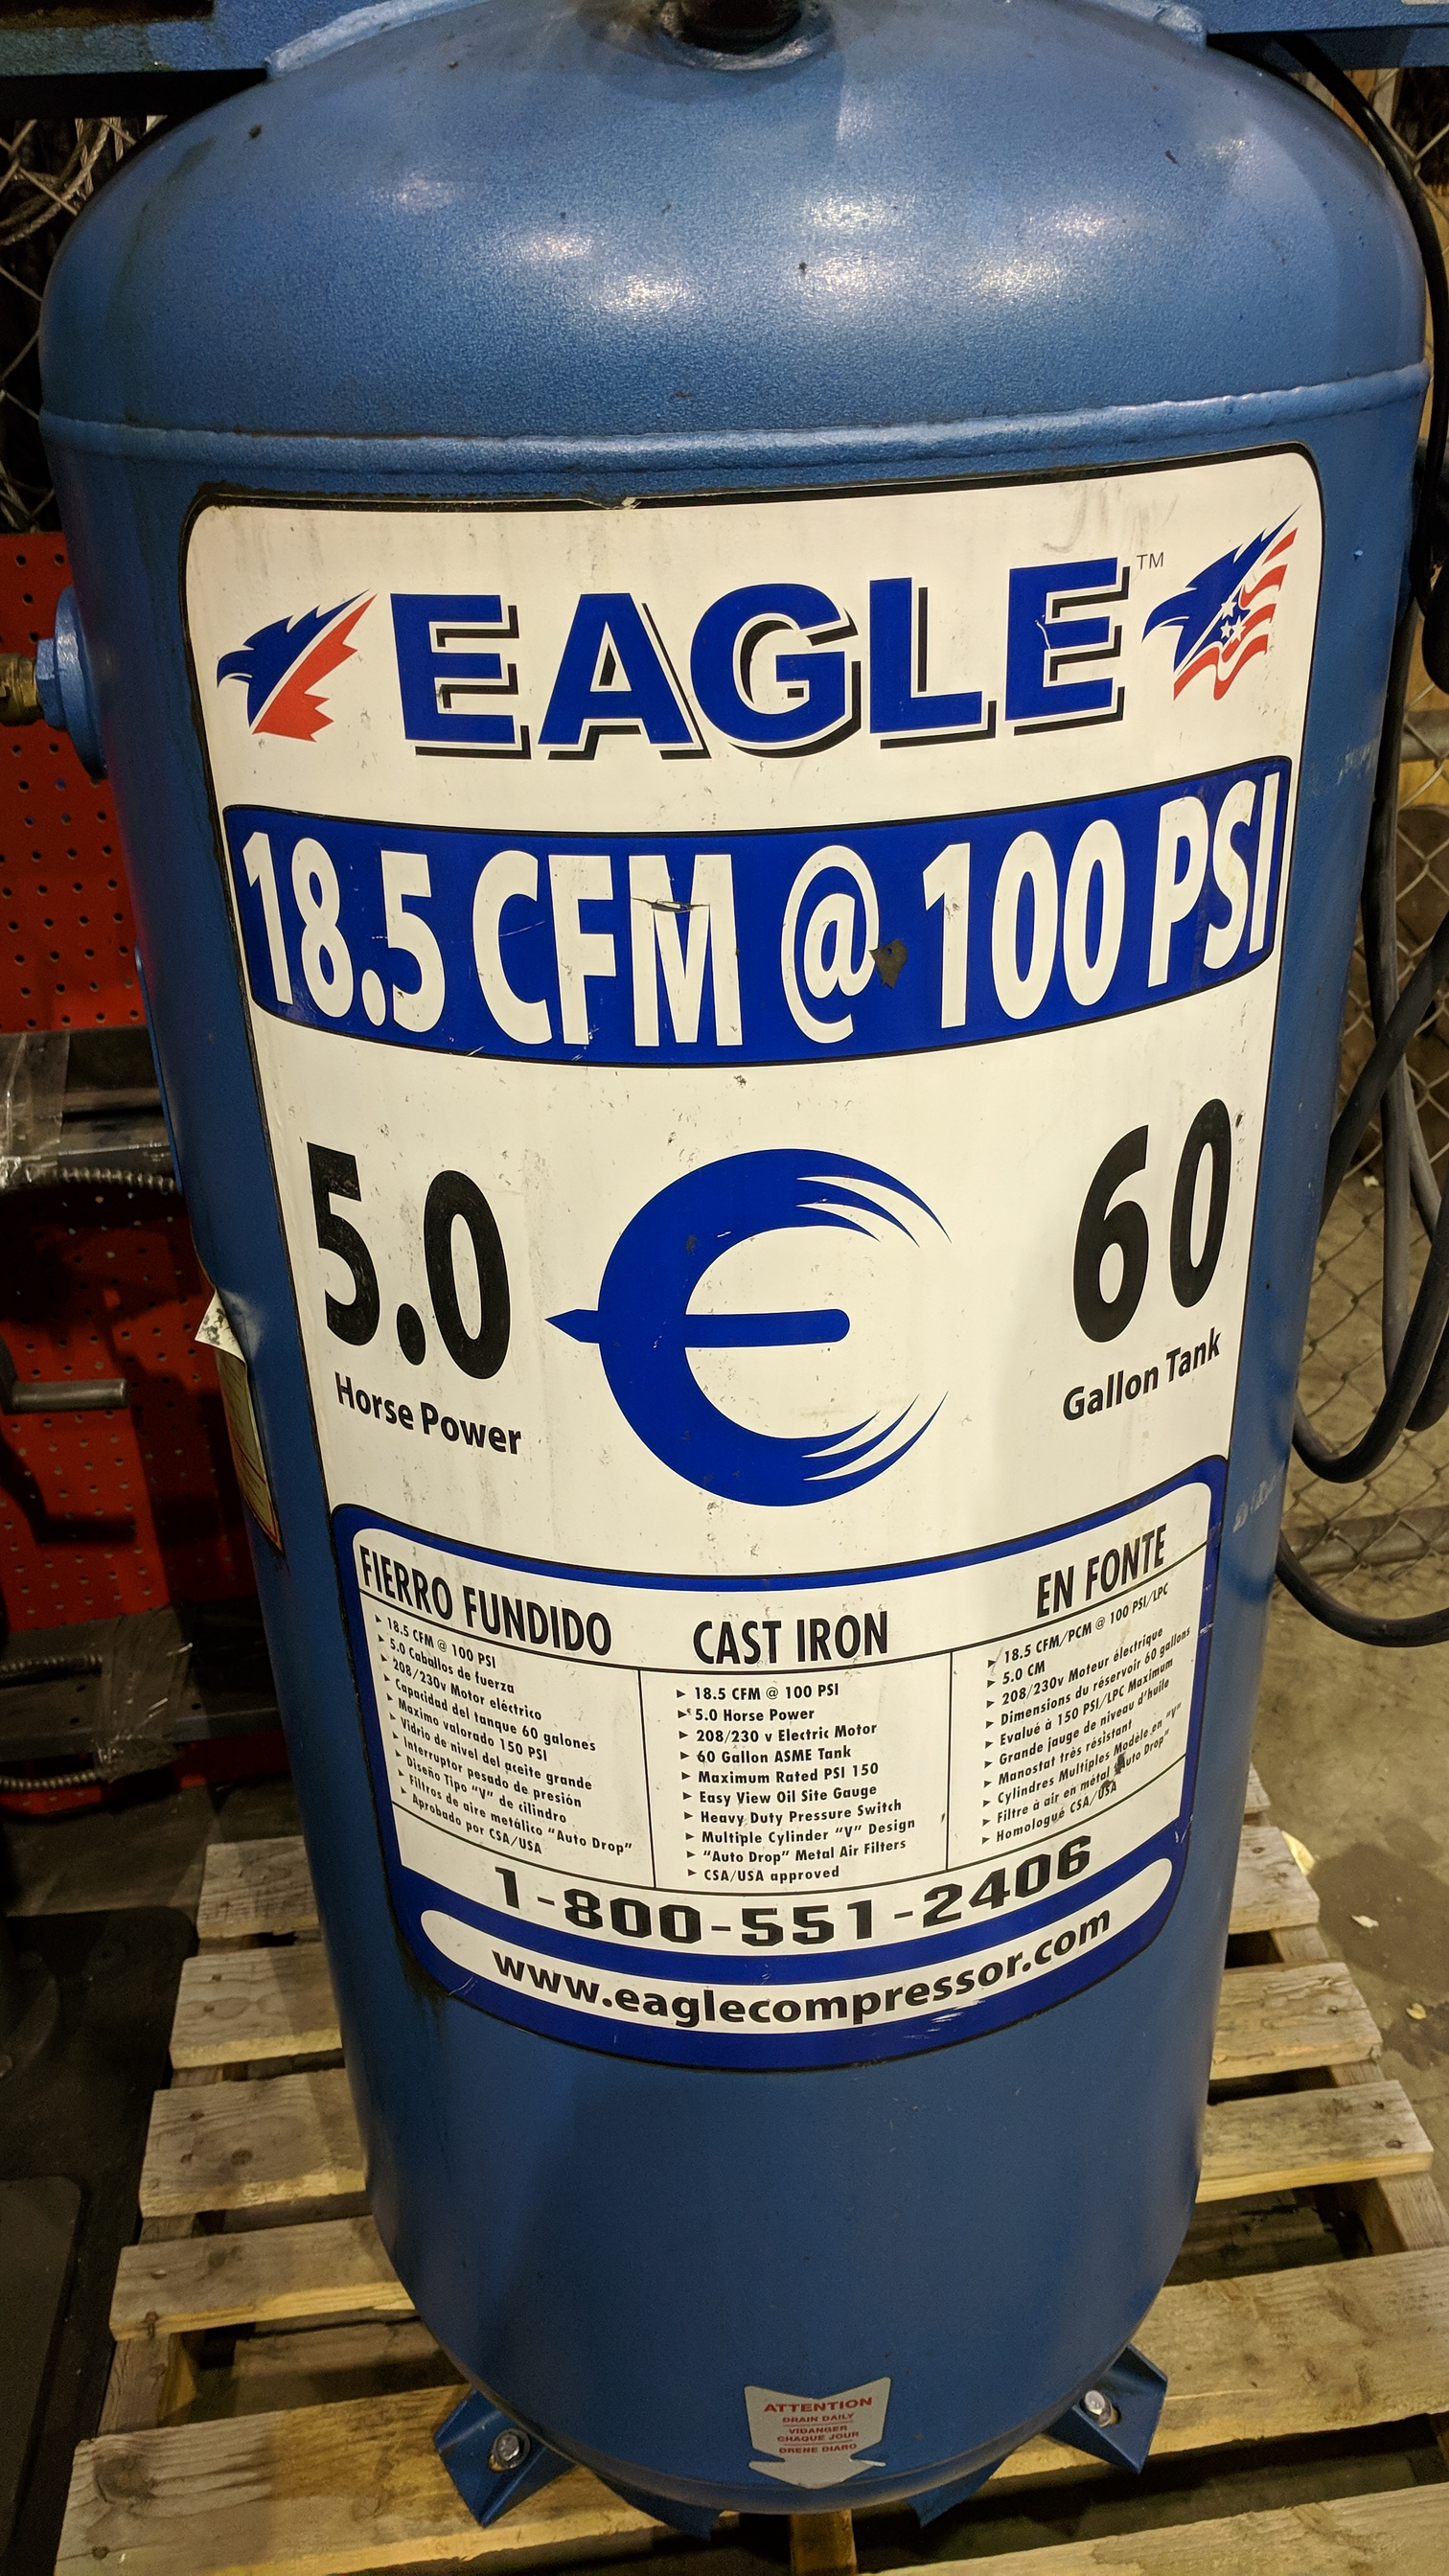 EAGLE C5160V1 PISTON TYPE TANK MOUNTED AIR COMPRESSOR WITH 5HP, 60 GAL, 18.5 CFM @ 100 PSI CAPACITY, - Image 2 of 4